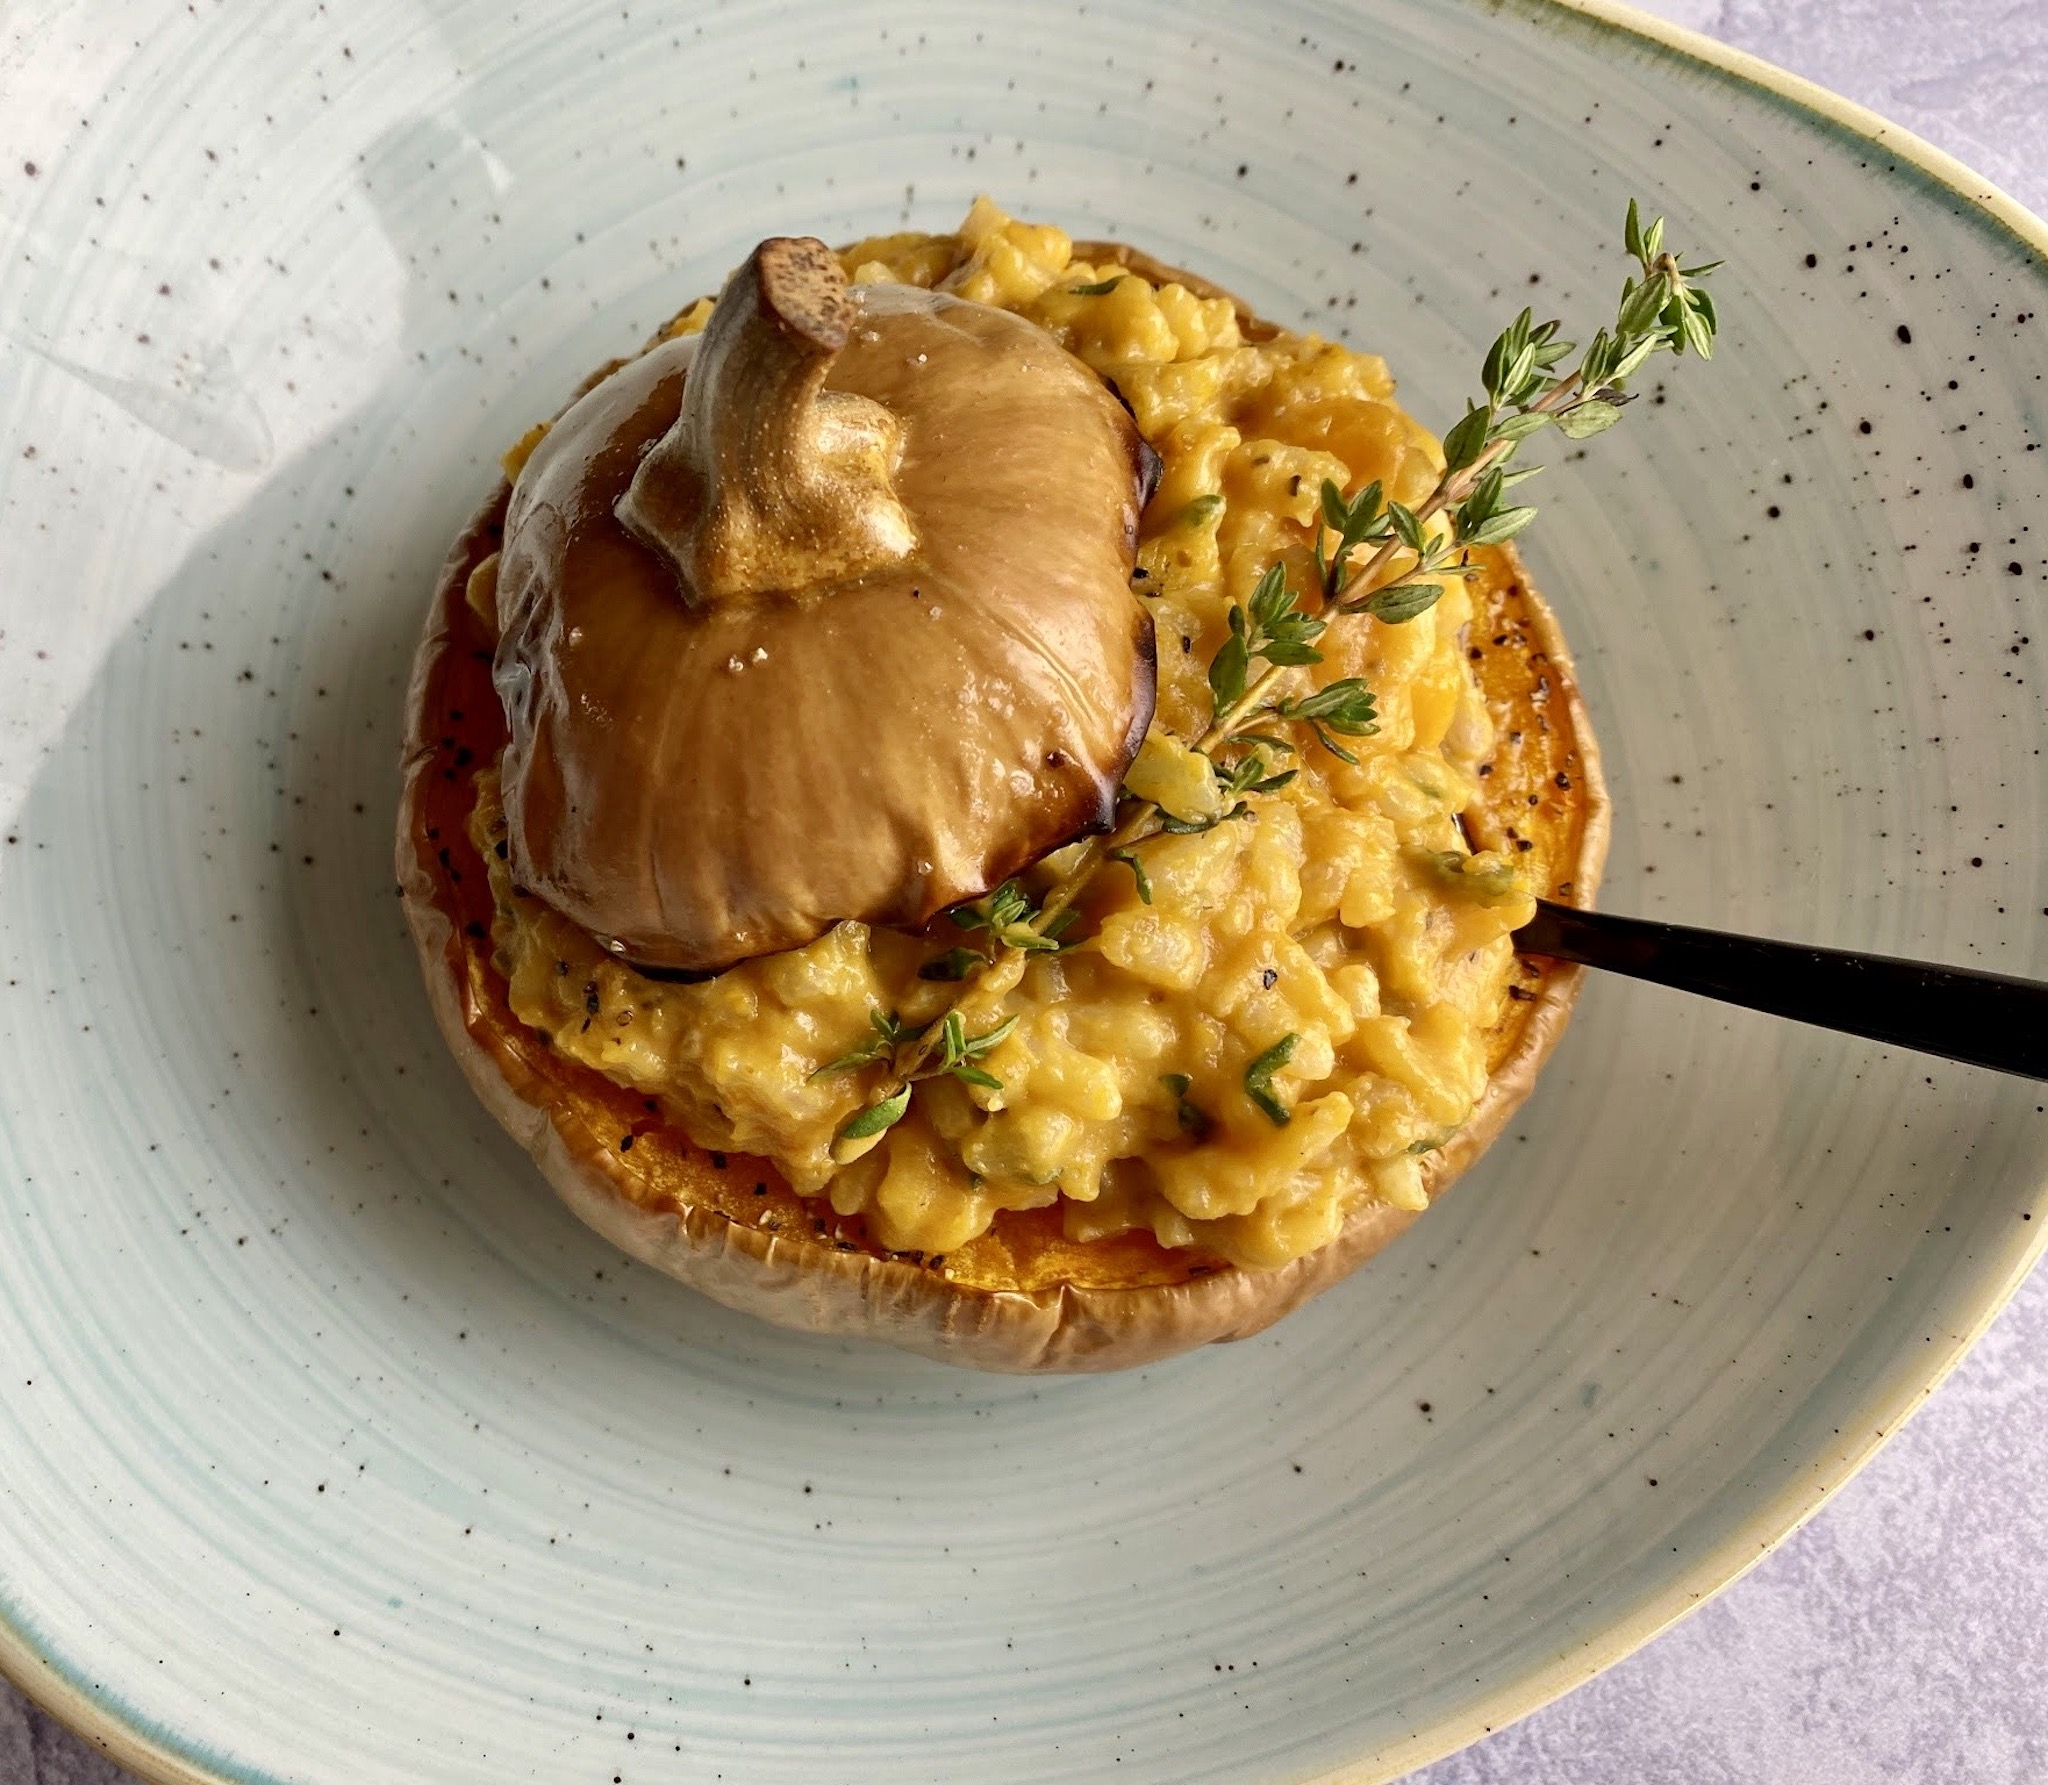 Two Graces - Roasted Baby Pumpkin stuffed with pumpkin risotto and parmesan tuile